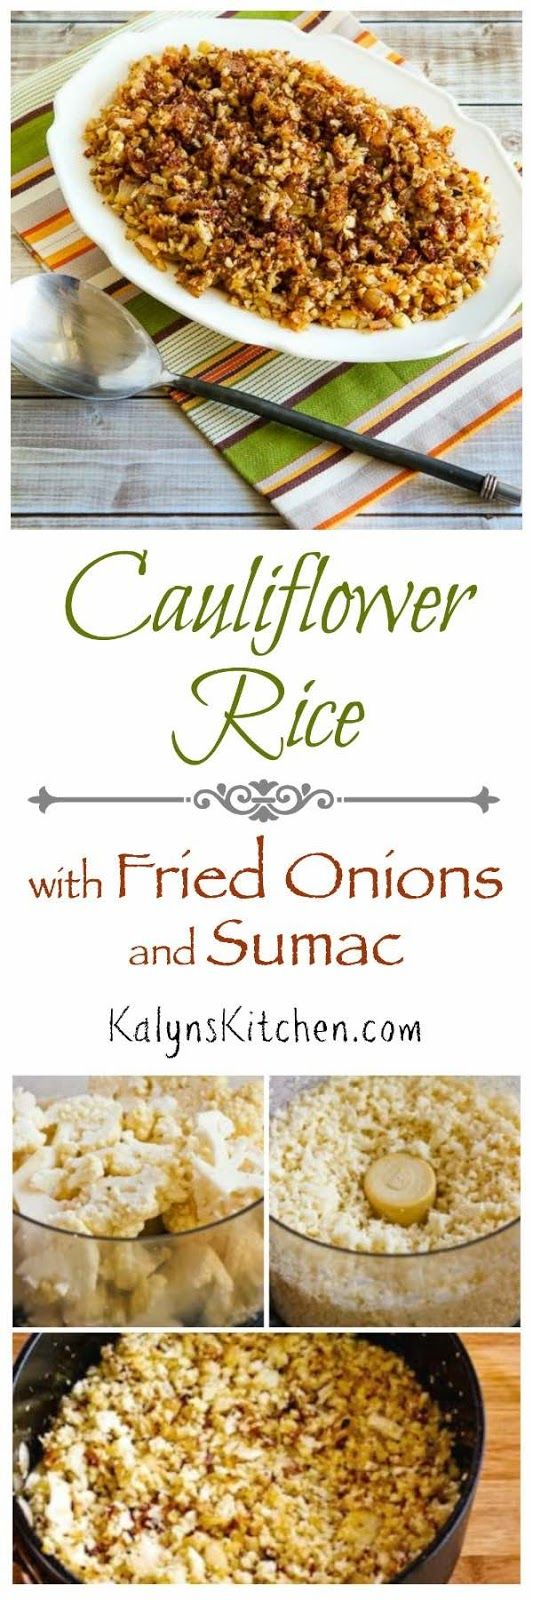 ... this Low-Carb Cauliflower Rice with Fried Onions and Sumac, and